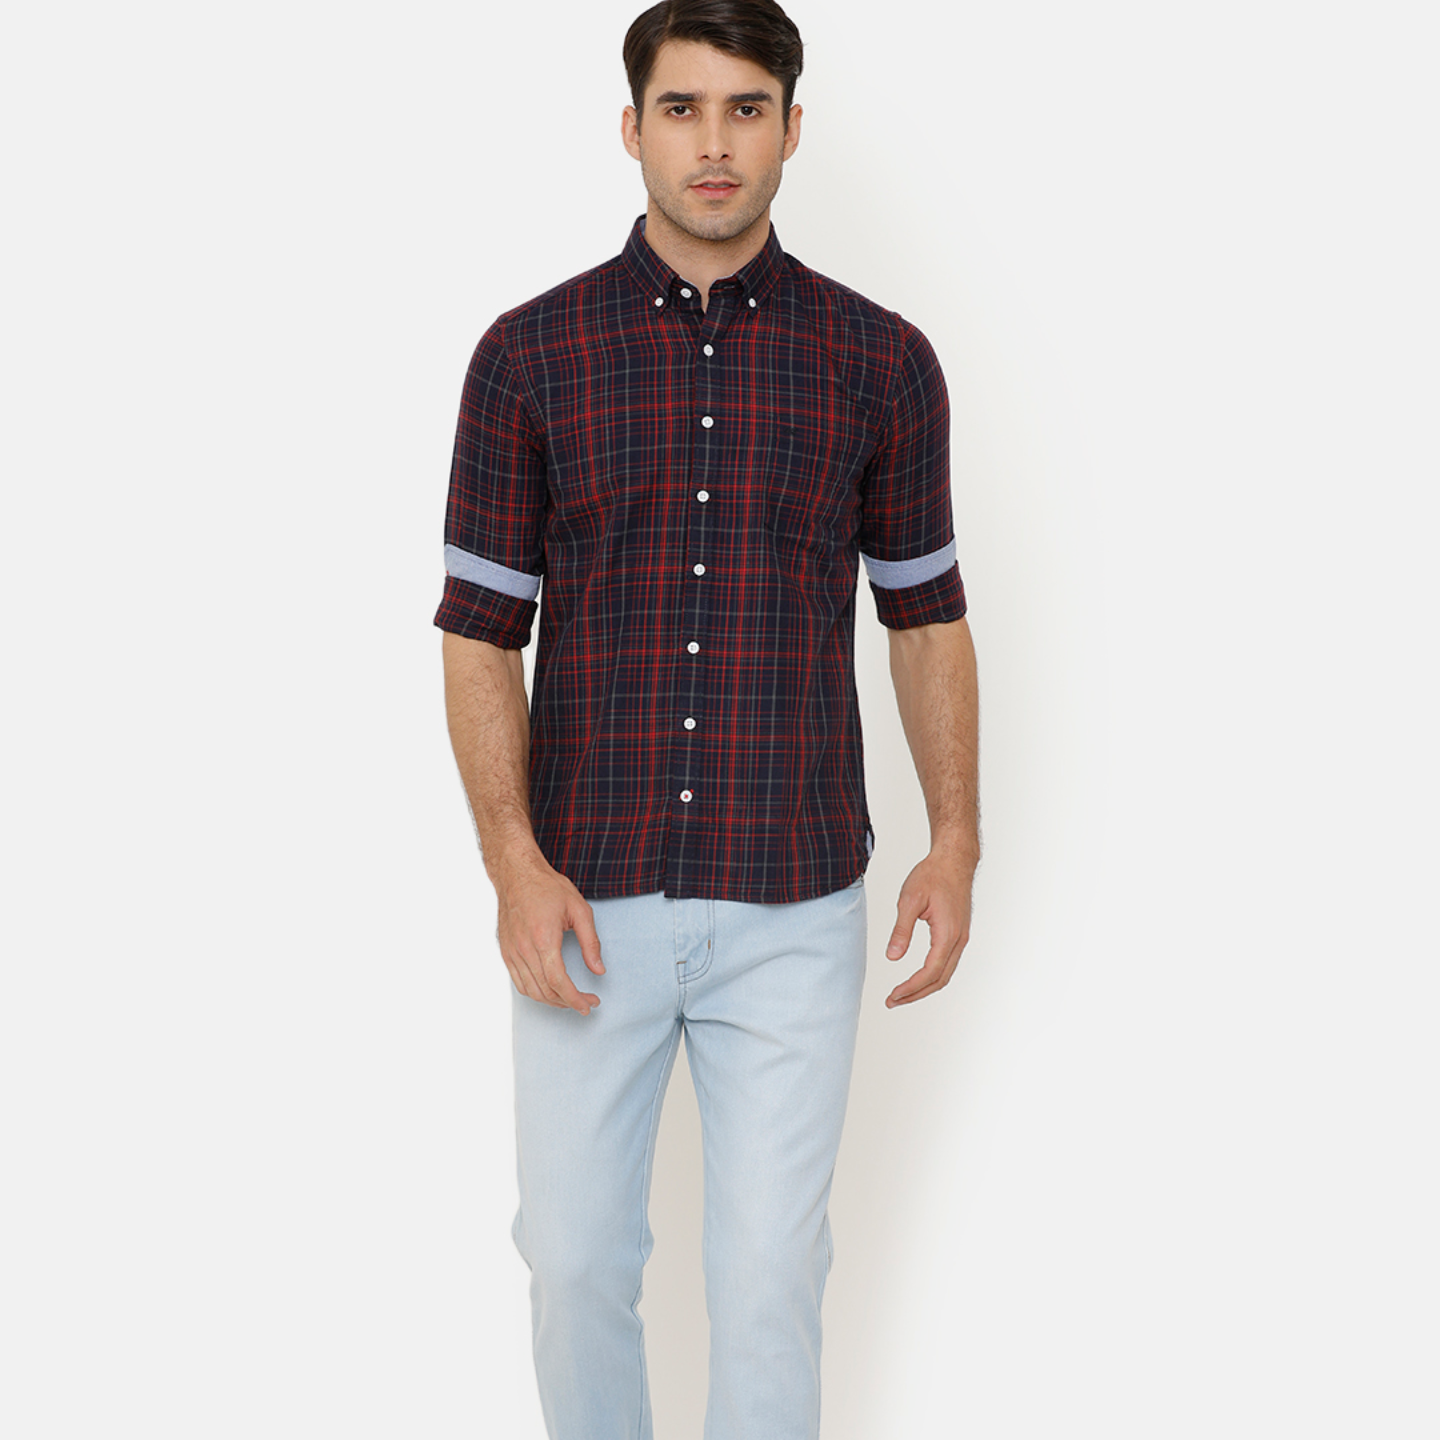 Bar Harbour Men Maroon & Navy Blue Slim Fit Checked Casual Shirt